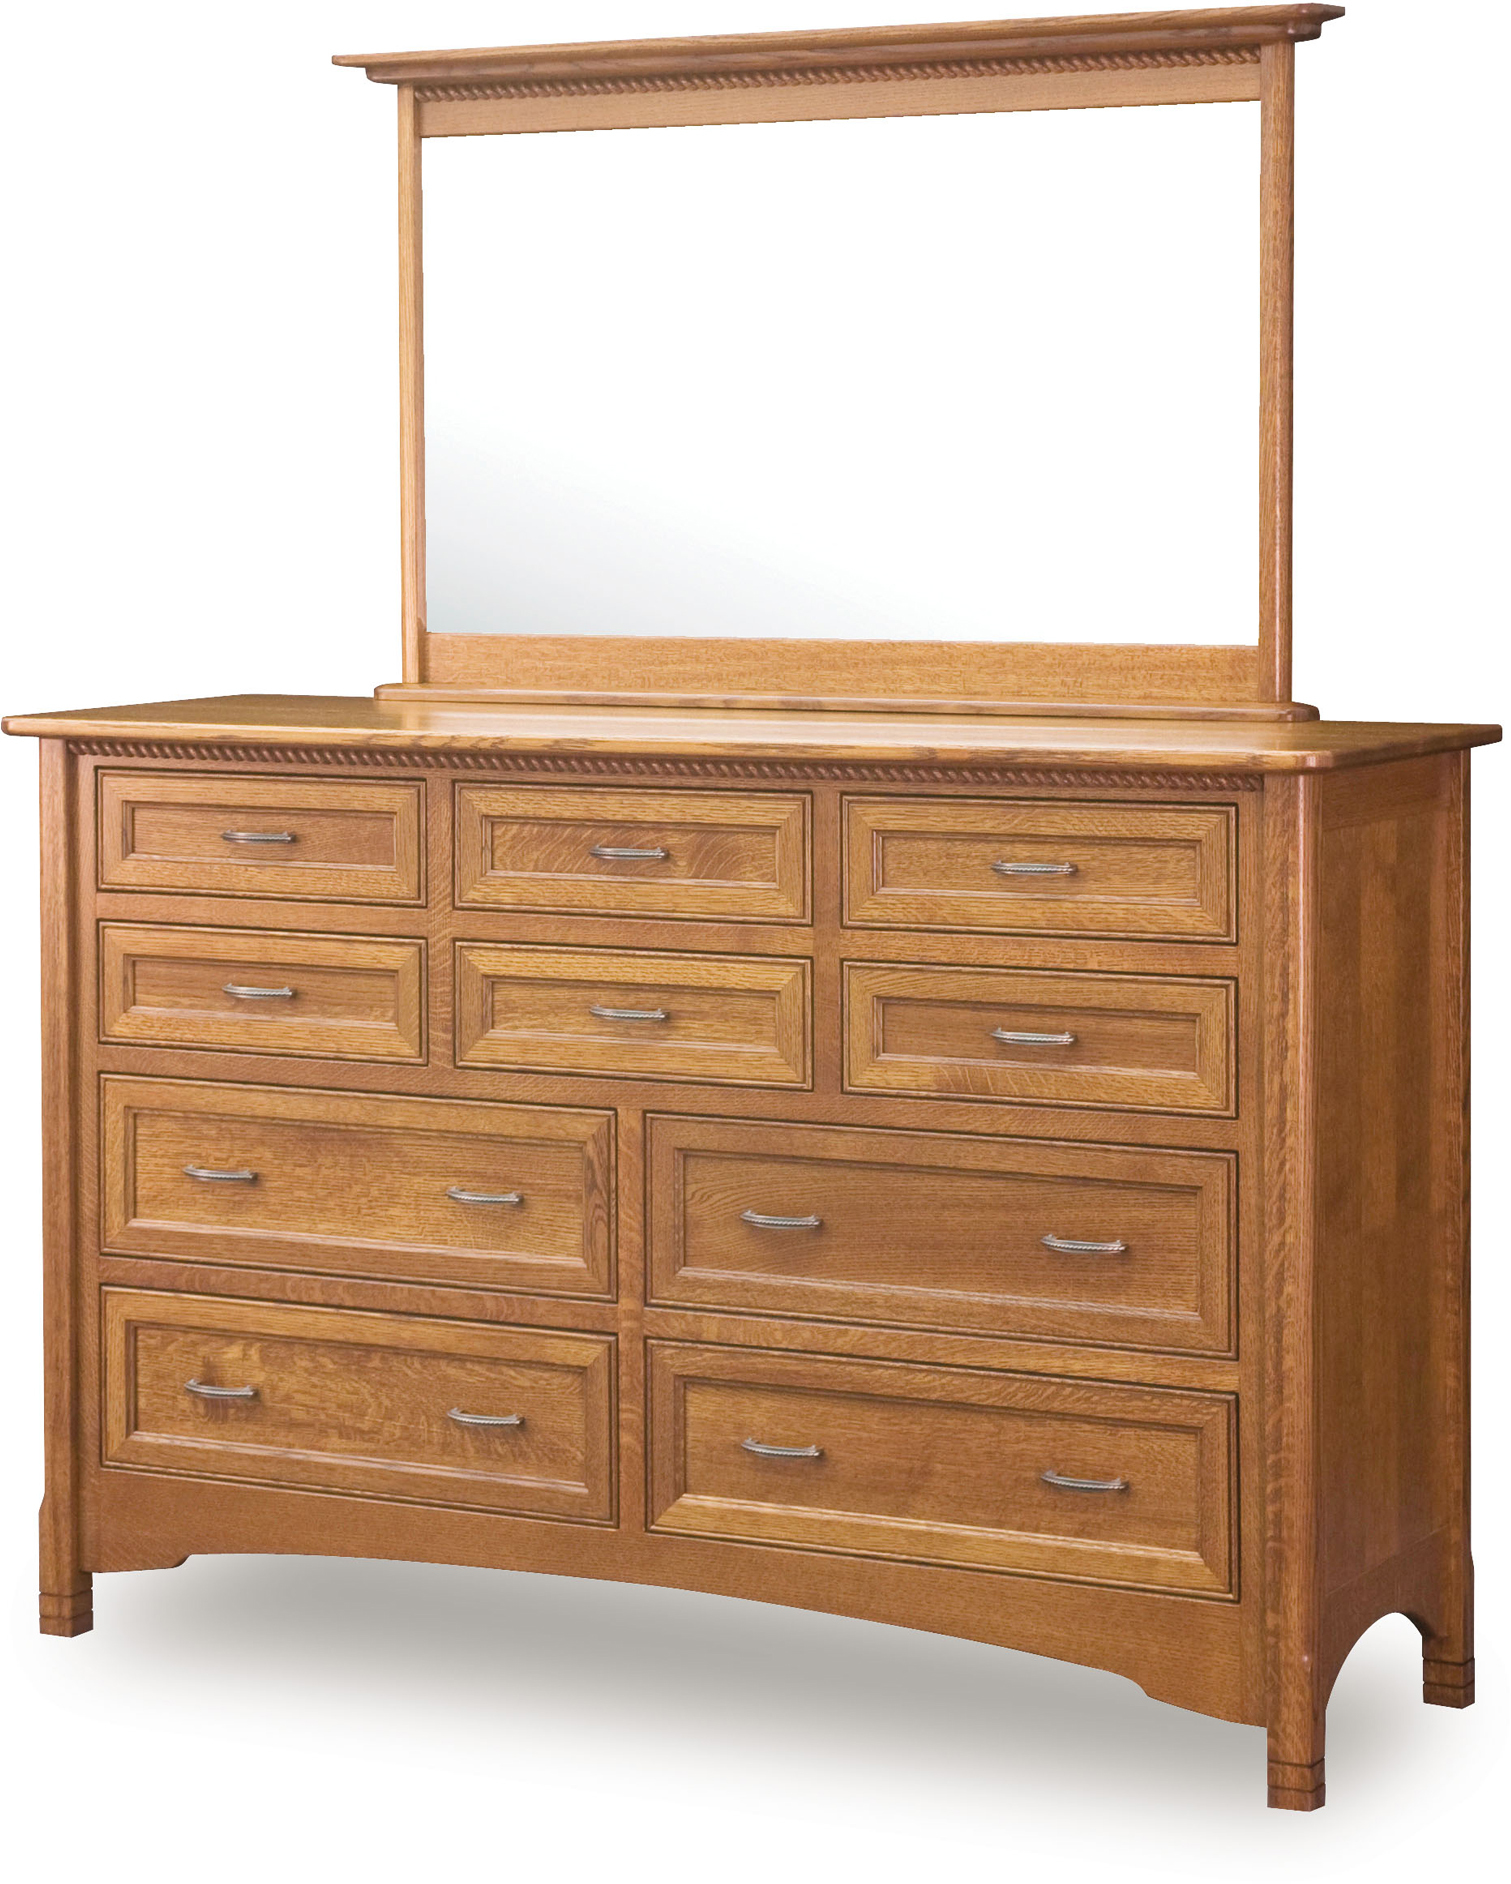 Quarter Sawn West Lake Bedroom Set